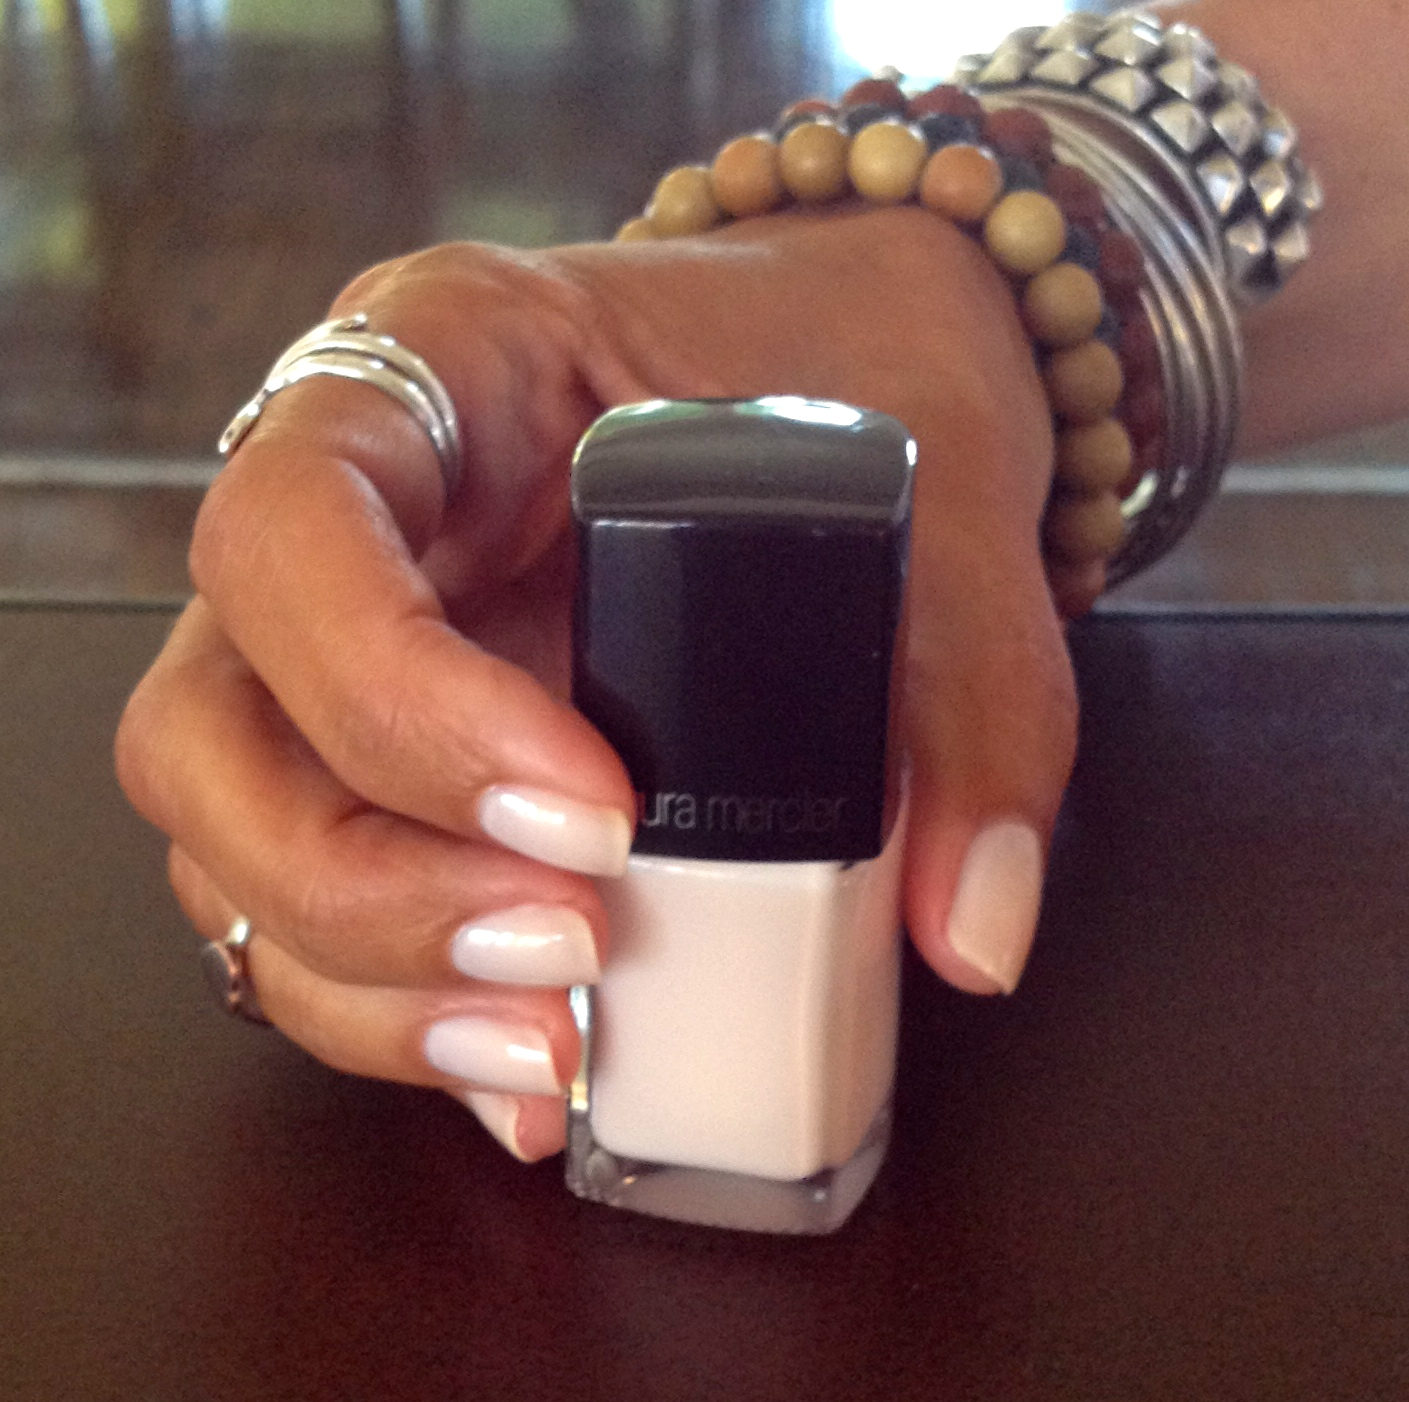 Laura Mercier, Limited Edition nail color,  Bare Angel, $18 . It's formaldehyde-free and very chip resistant!